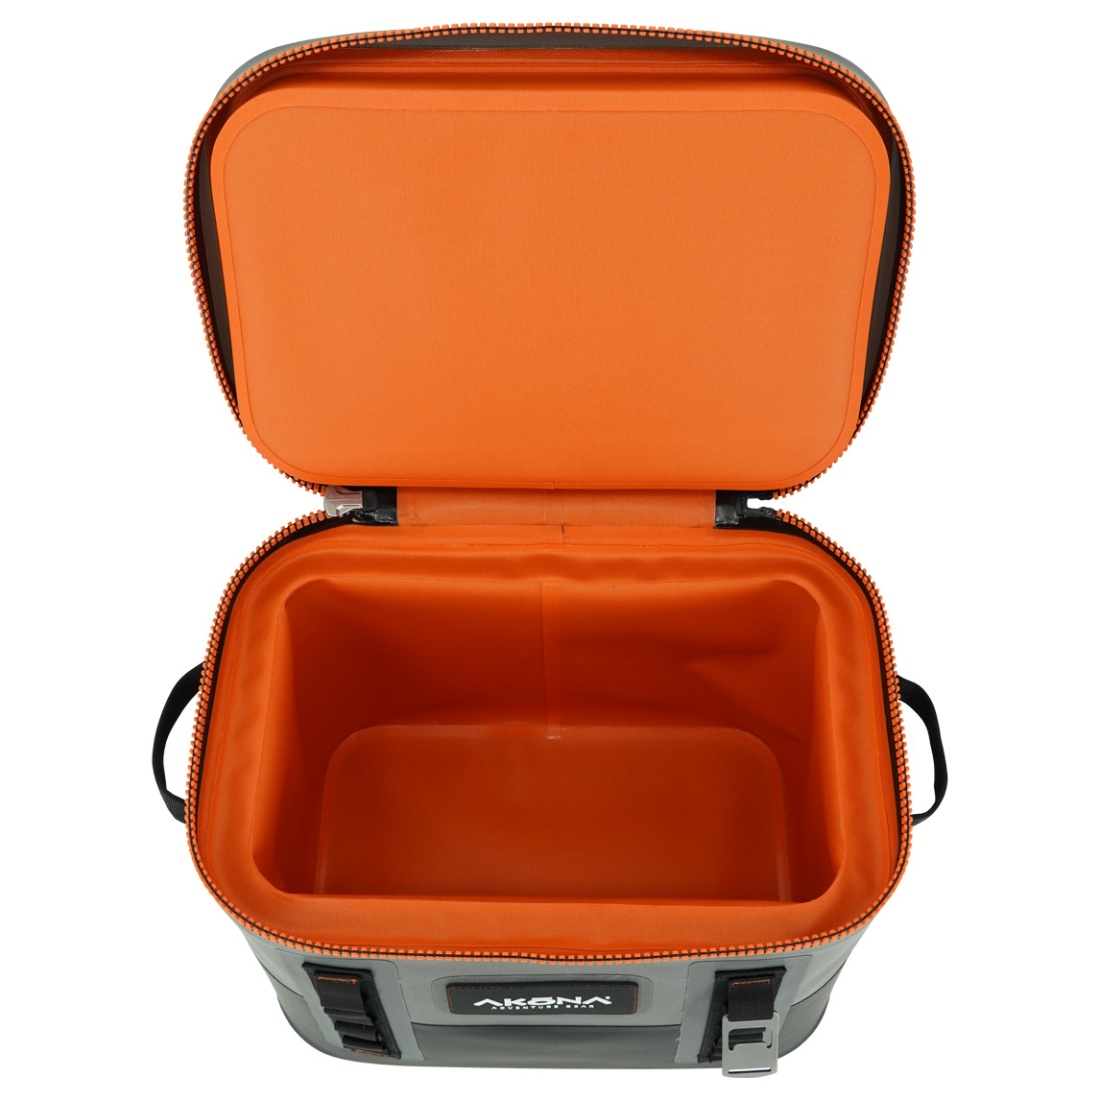 FARGO RECTANGLE SOFT COOLER